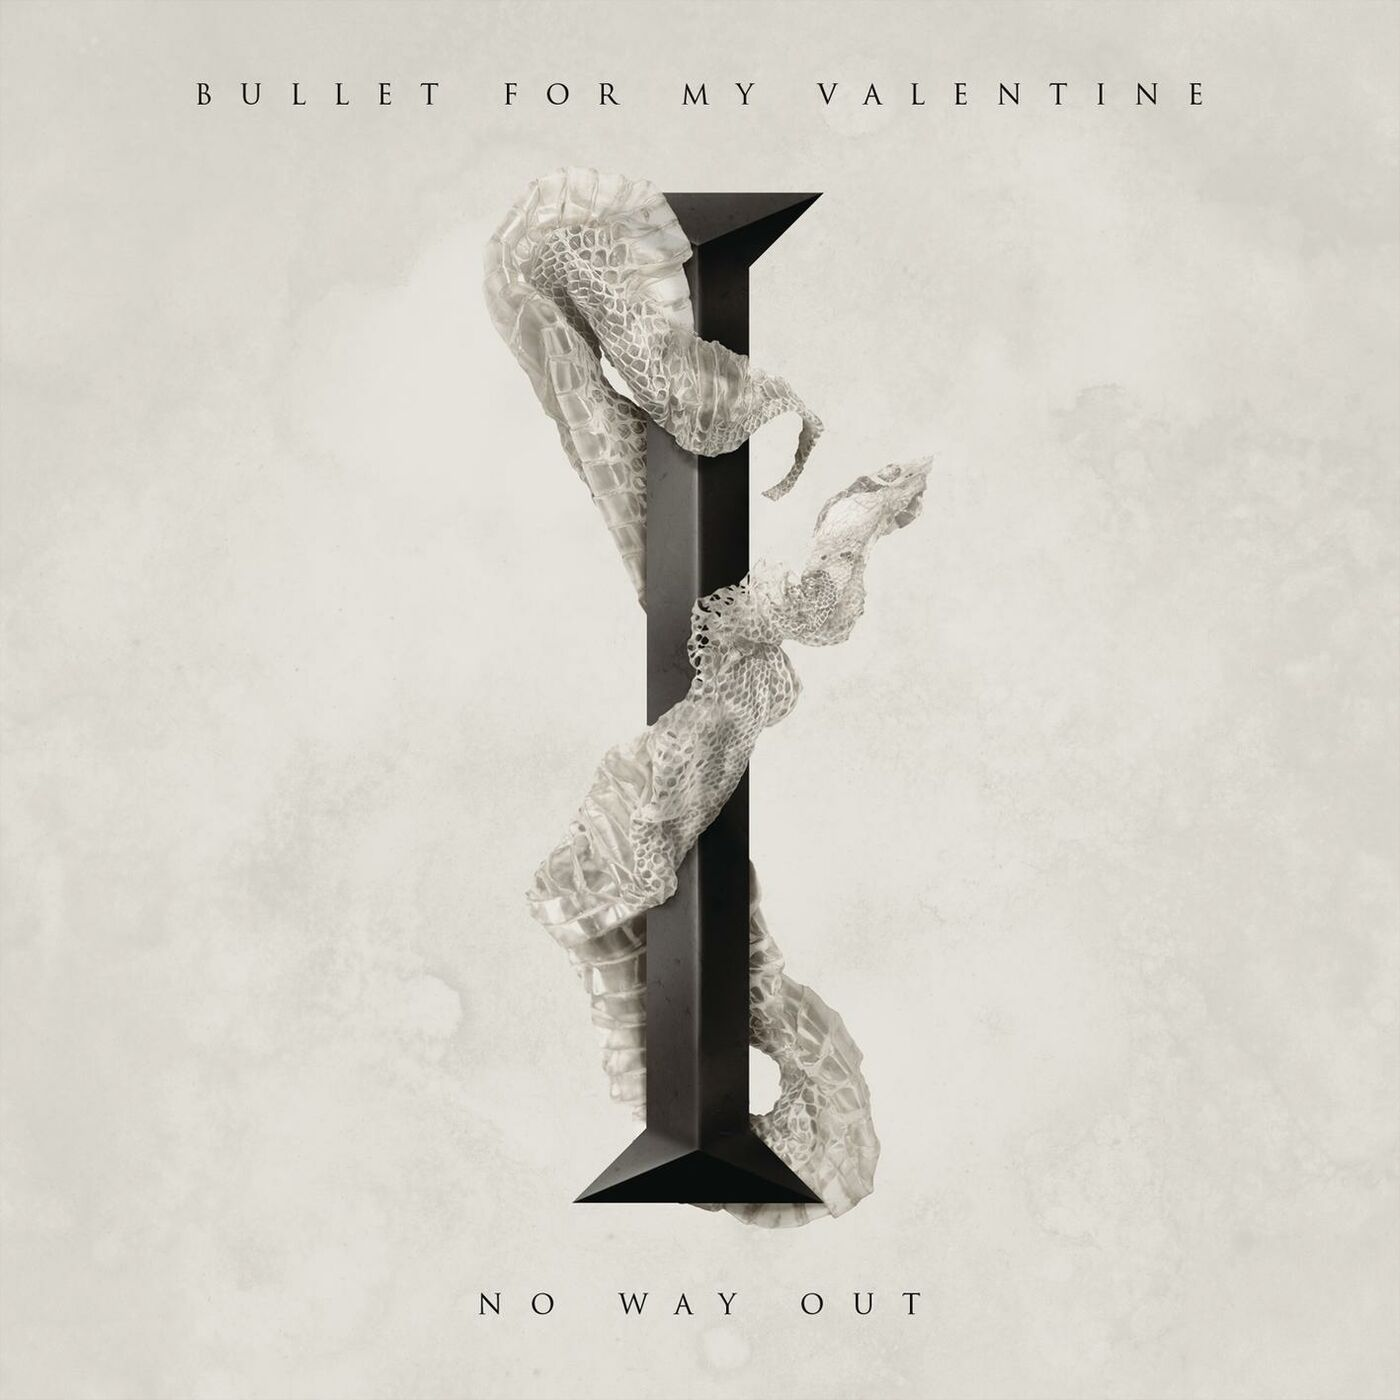 Bullet For My Valentine - No Way Out (Single) (2015)